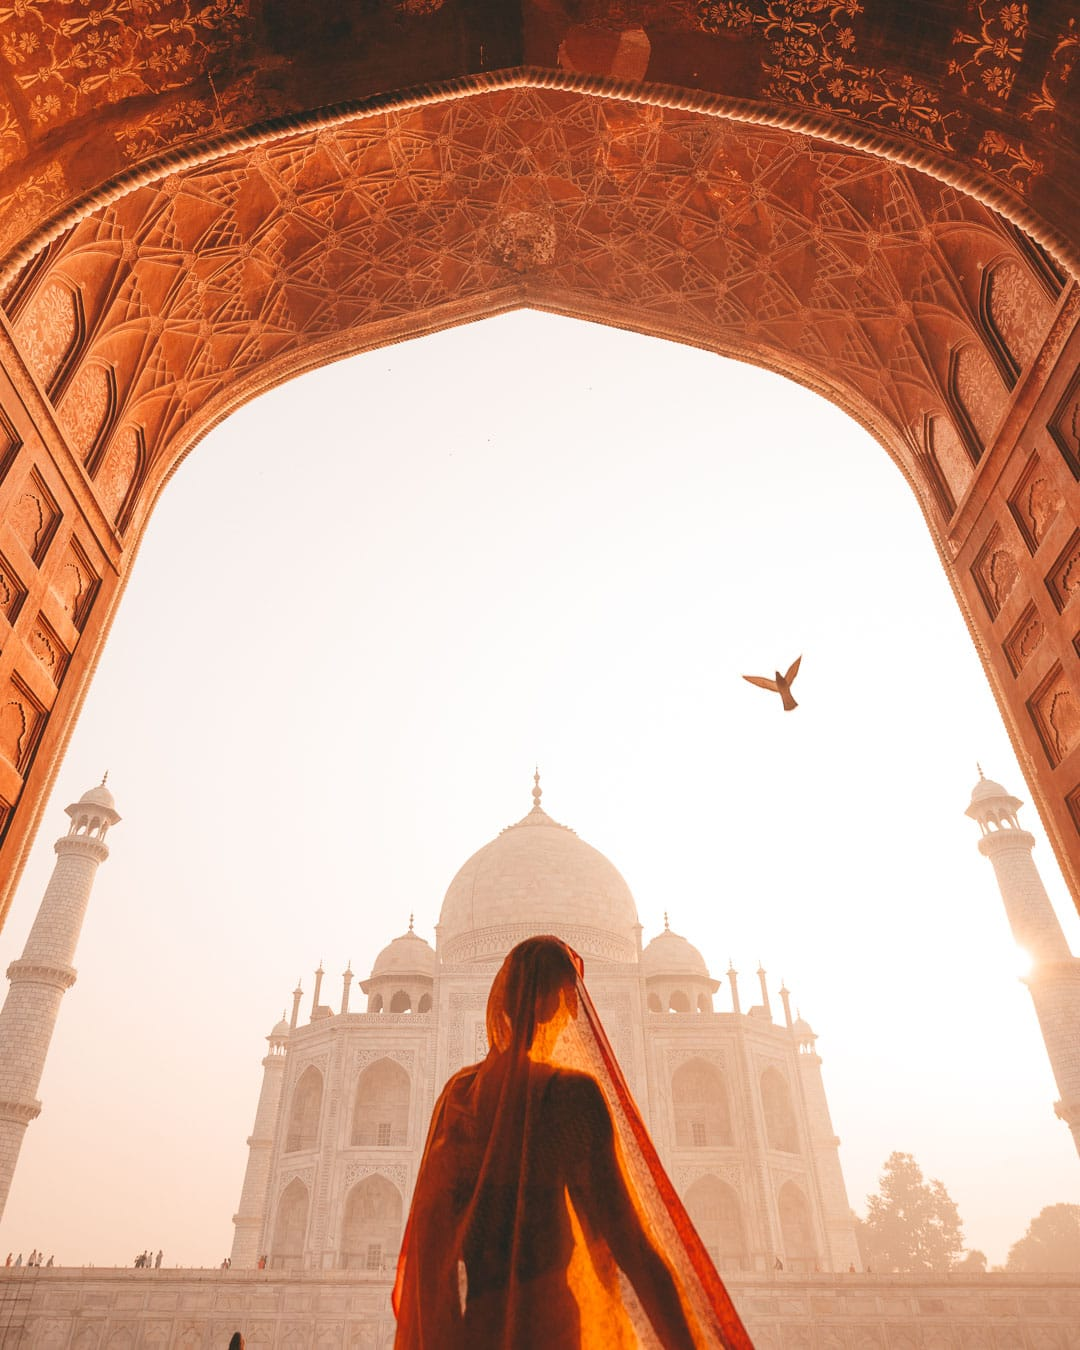 Sindhya wearing a saree at sunrise in the archway of the Taj Mahal mosque as a bird flies above.